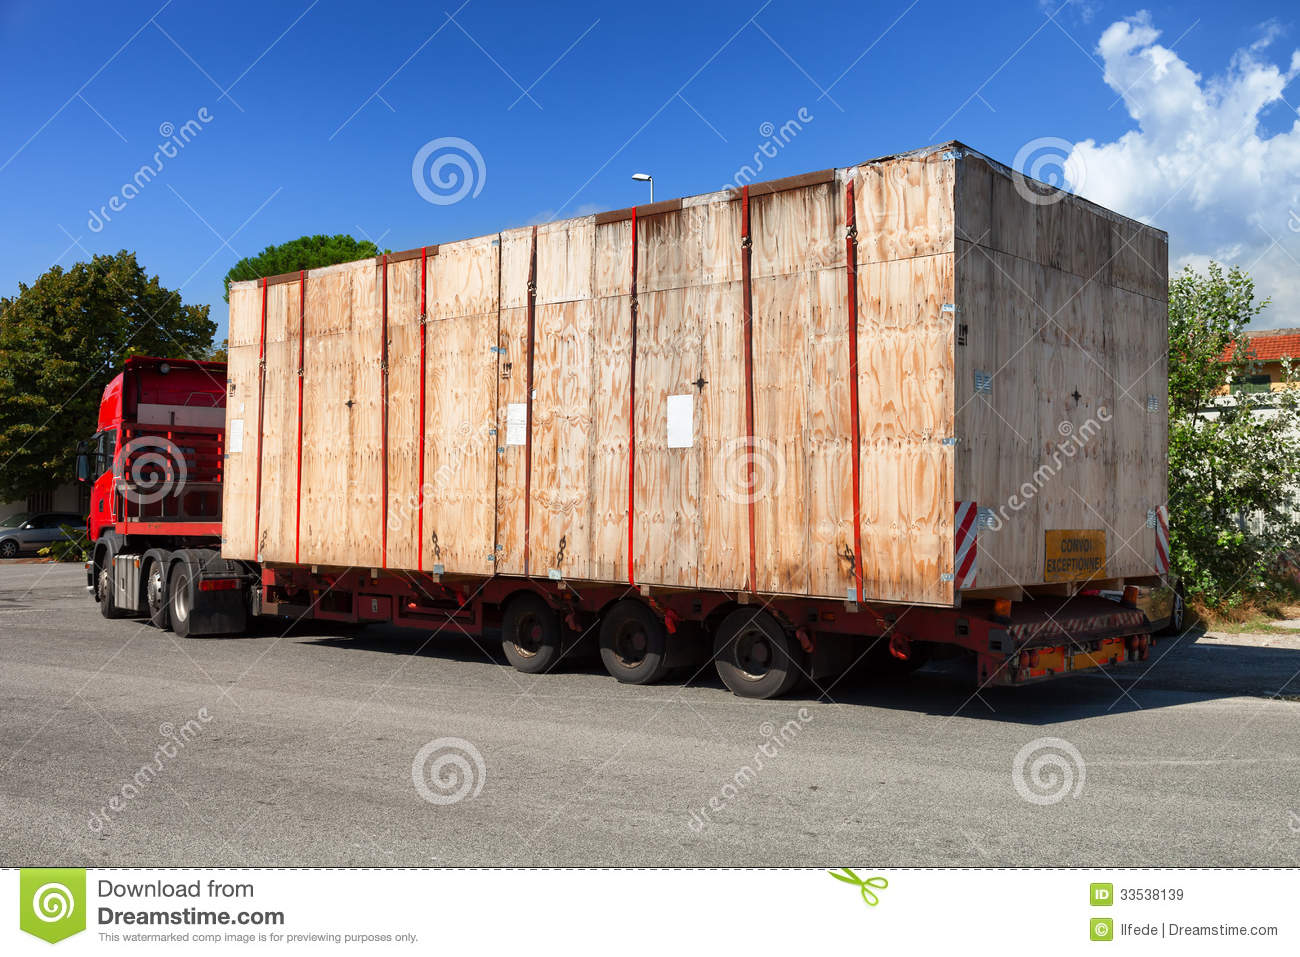 Titan Tiny House Notarosa also Facades Single Storey House Plans Home Designs Ee1ce6915f92f887 besides Index as well Tumbleweed Tiny House Shells besides Royalty Free Stock Images Semi Truck Road Wooden Crate Oversize Load Shipment Image33538139. on trailer home plans